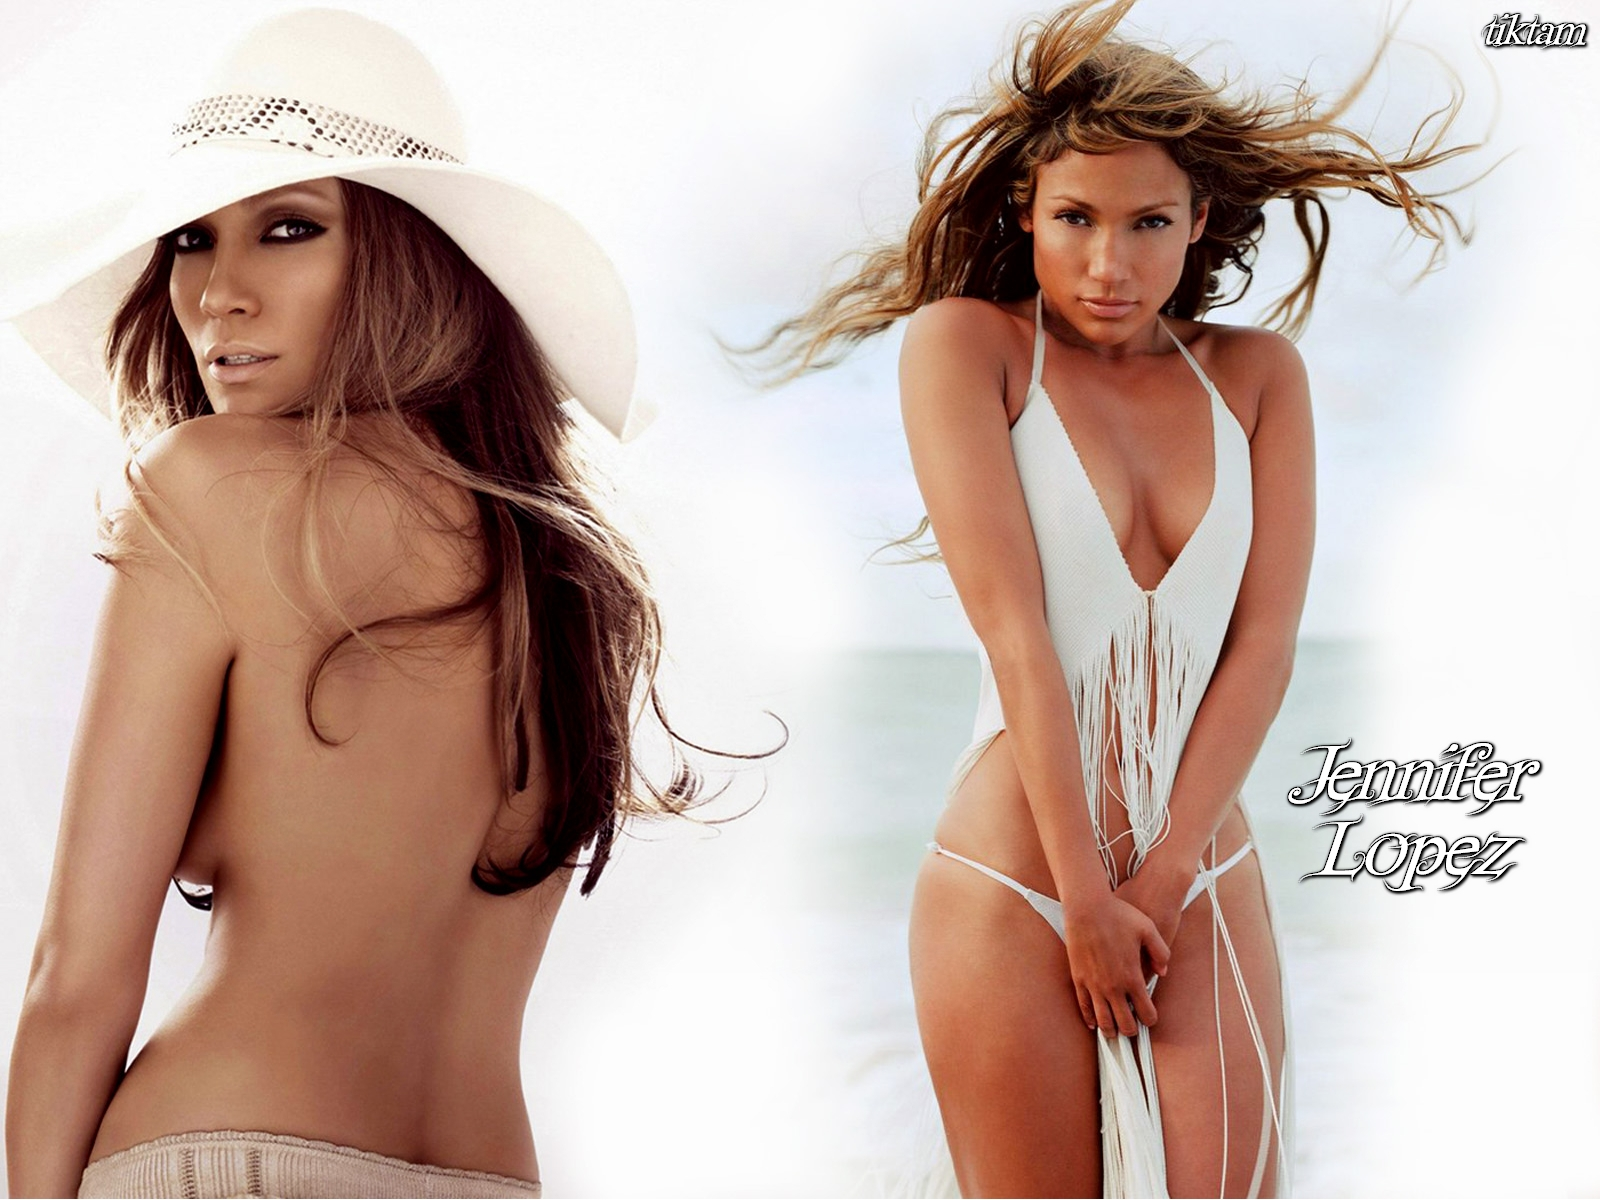 Sexy Jennifer Lopez HQ Wallpapers 3659